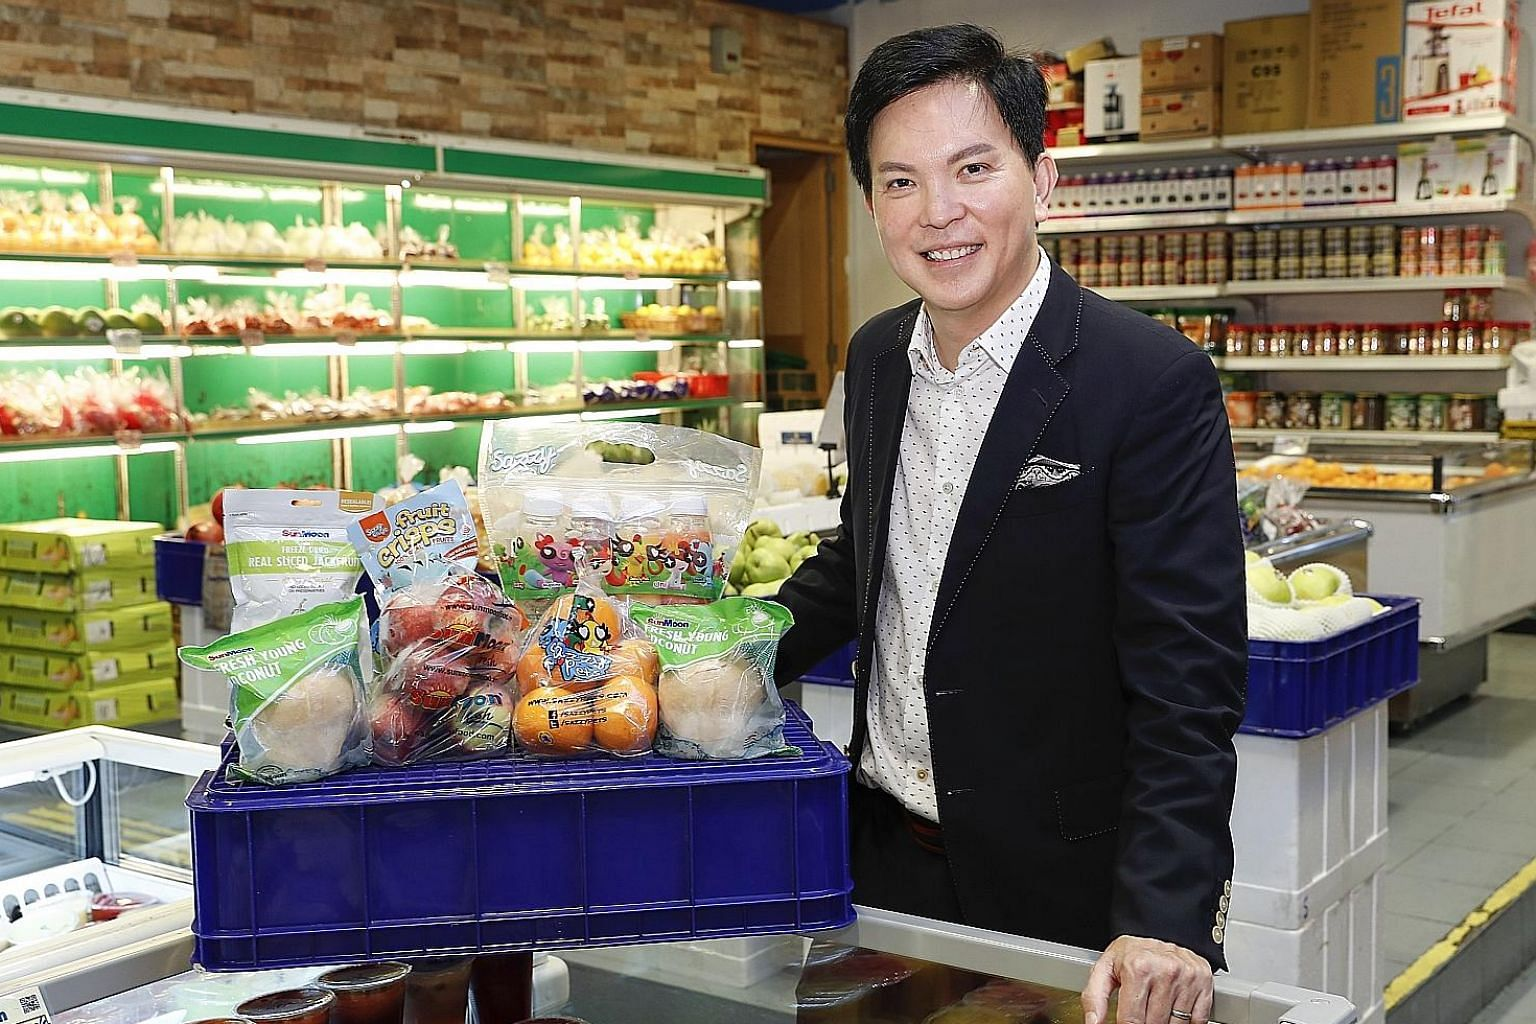 Mr Gary Loh, vice-chairman and chief executive of SunMoon, says his company aims to expand sales by widening its product range and penetrating new and existing markets via both traditional and online channels.